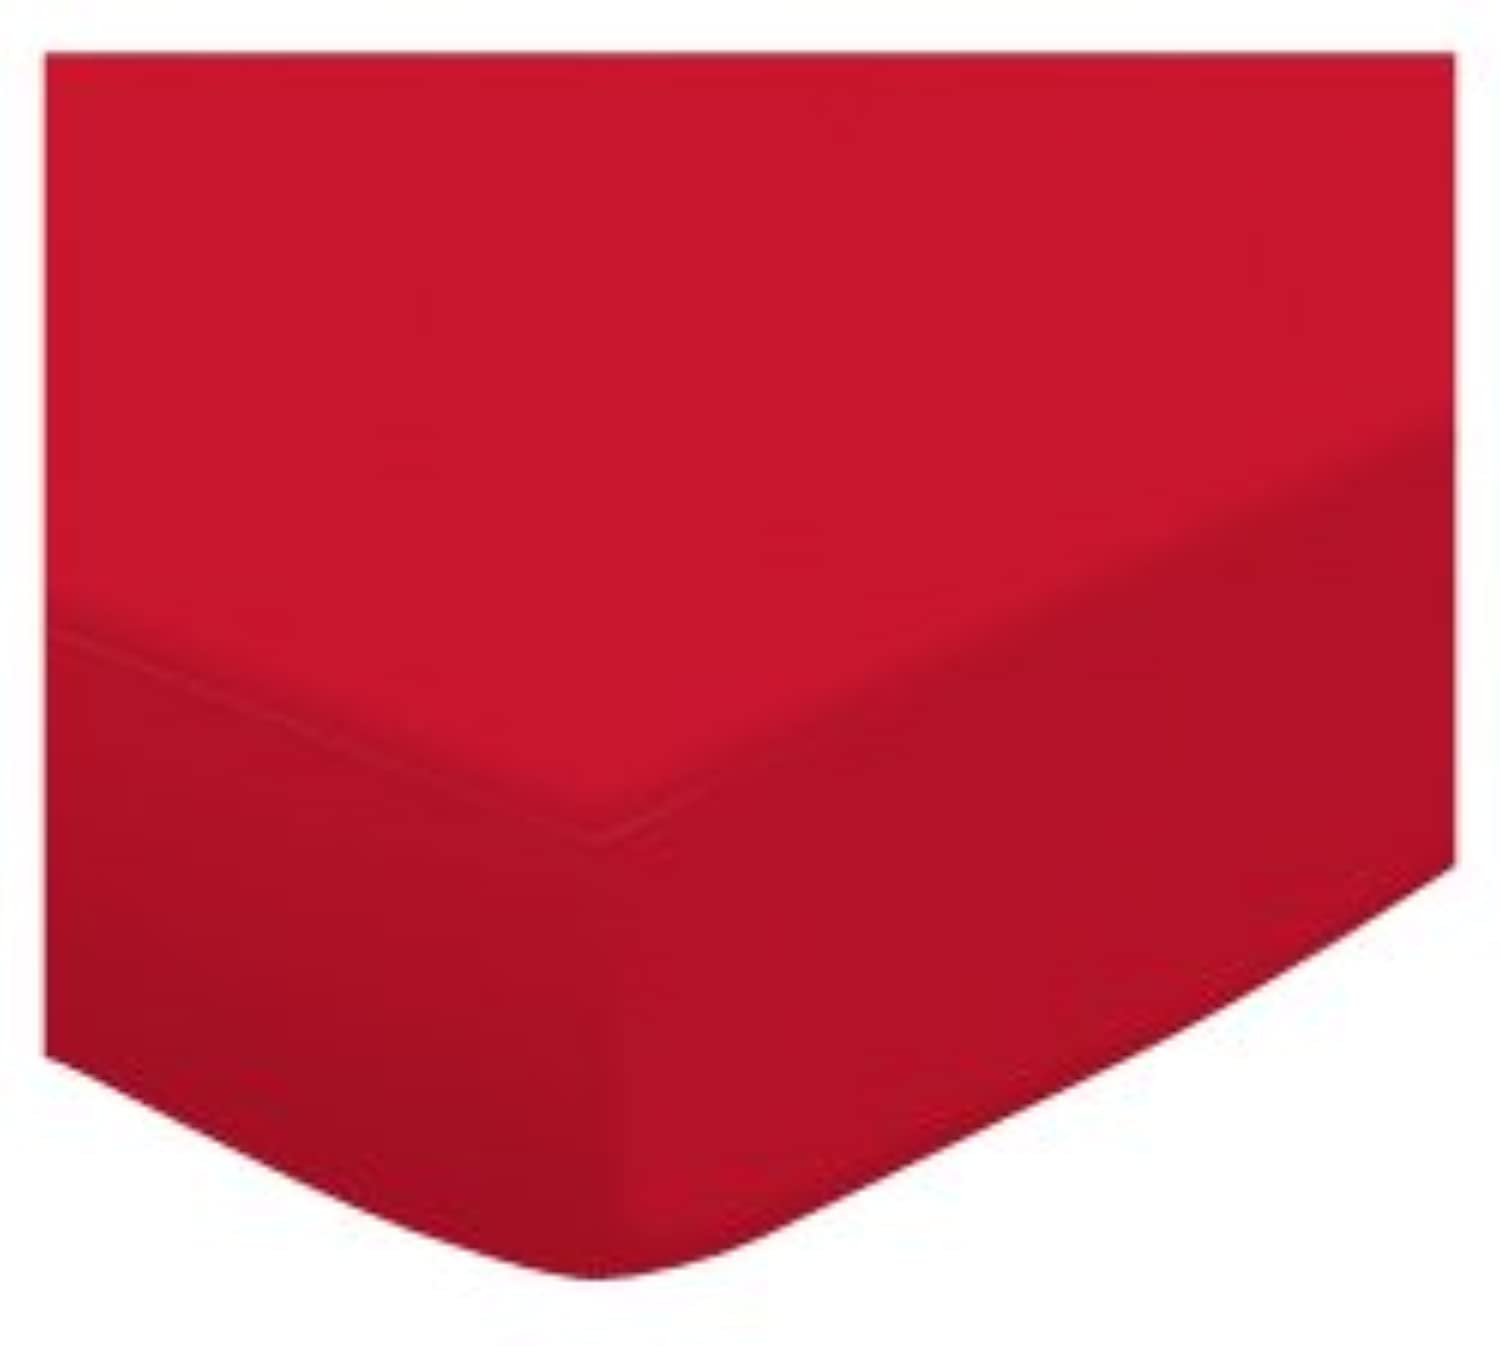 SheetWorld Fitted Pack N Play (Graco) Sheet - Solid Red Jersey Knit - Solid Colors by sheetworld